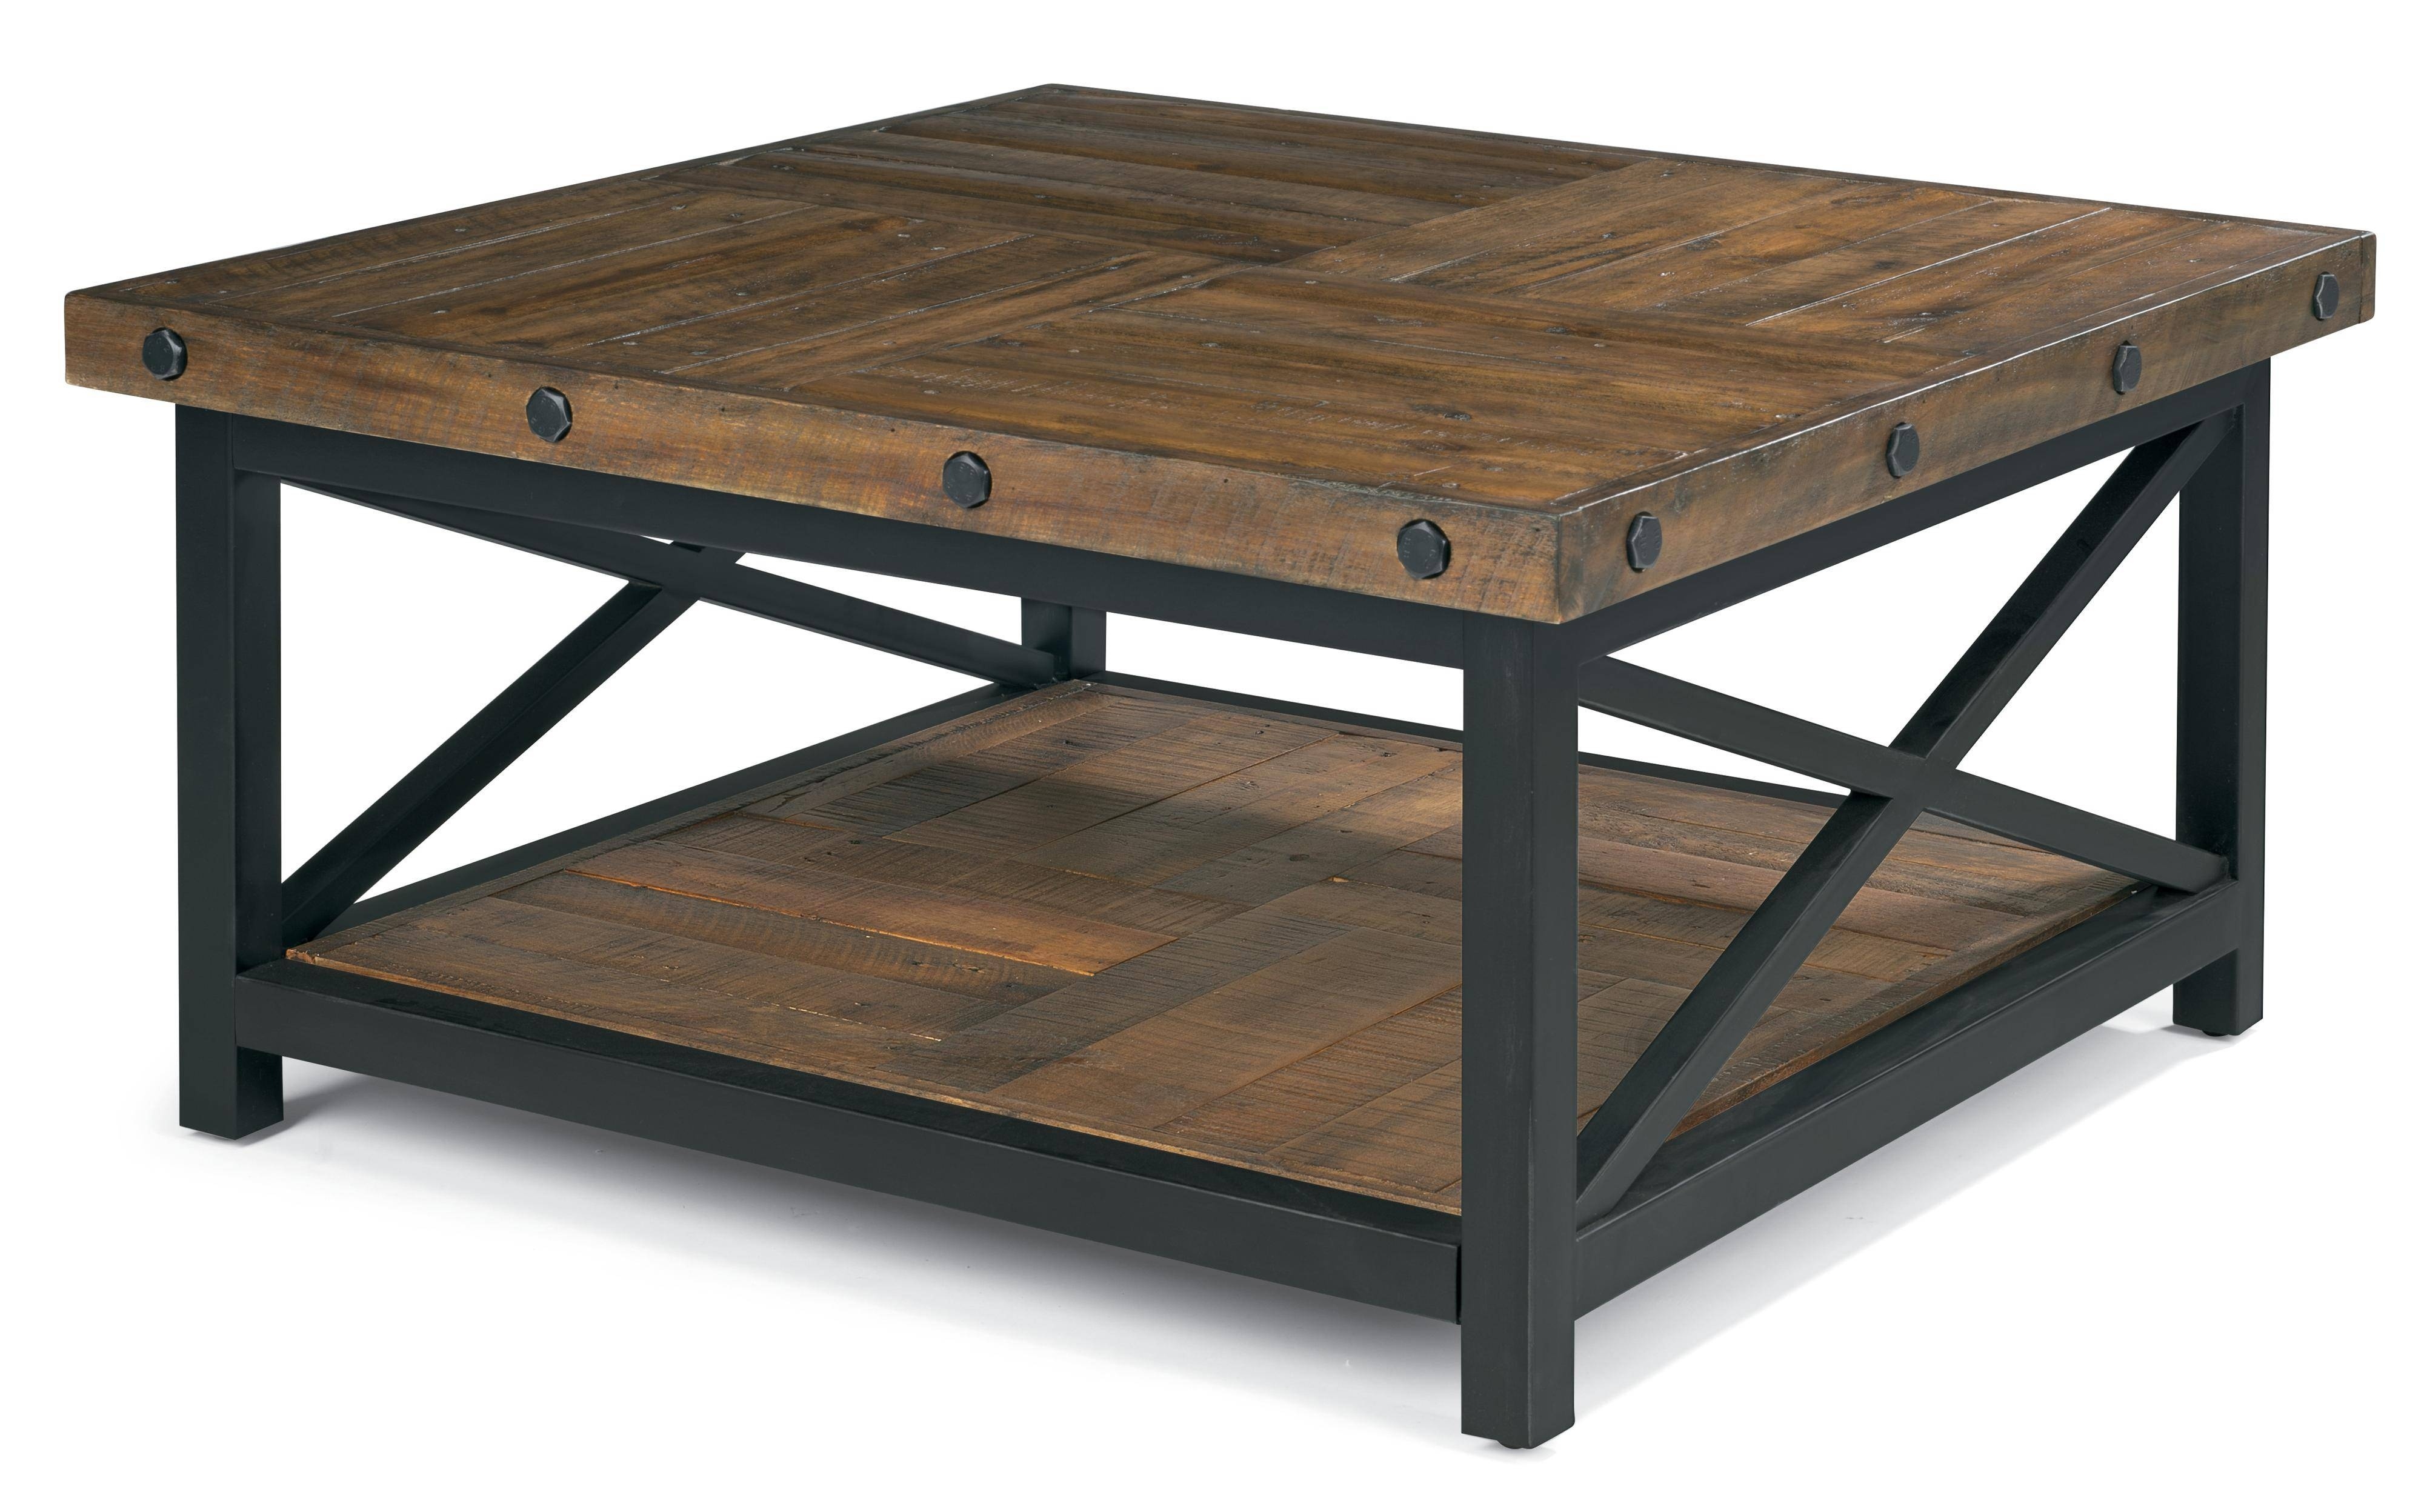 Flexsteel Carpenter Square Cocktail Table With Metal Base And Wood intended for Hardwood Coffee Tables With Storage (Image 13 of 30)